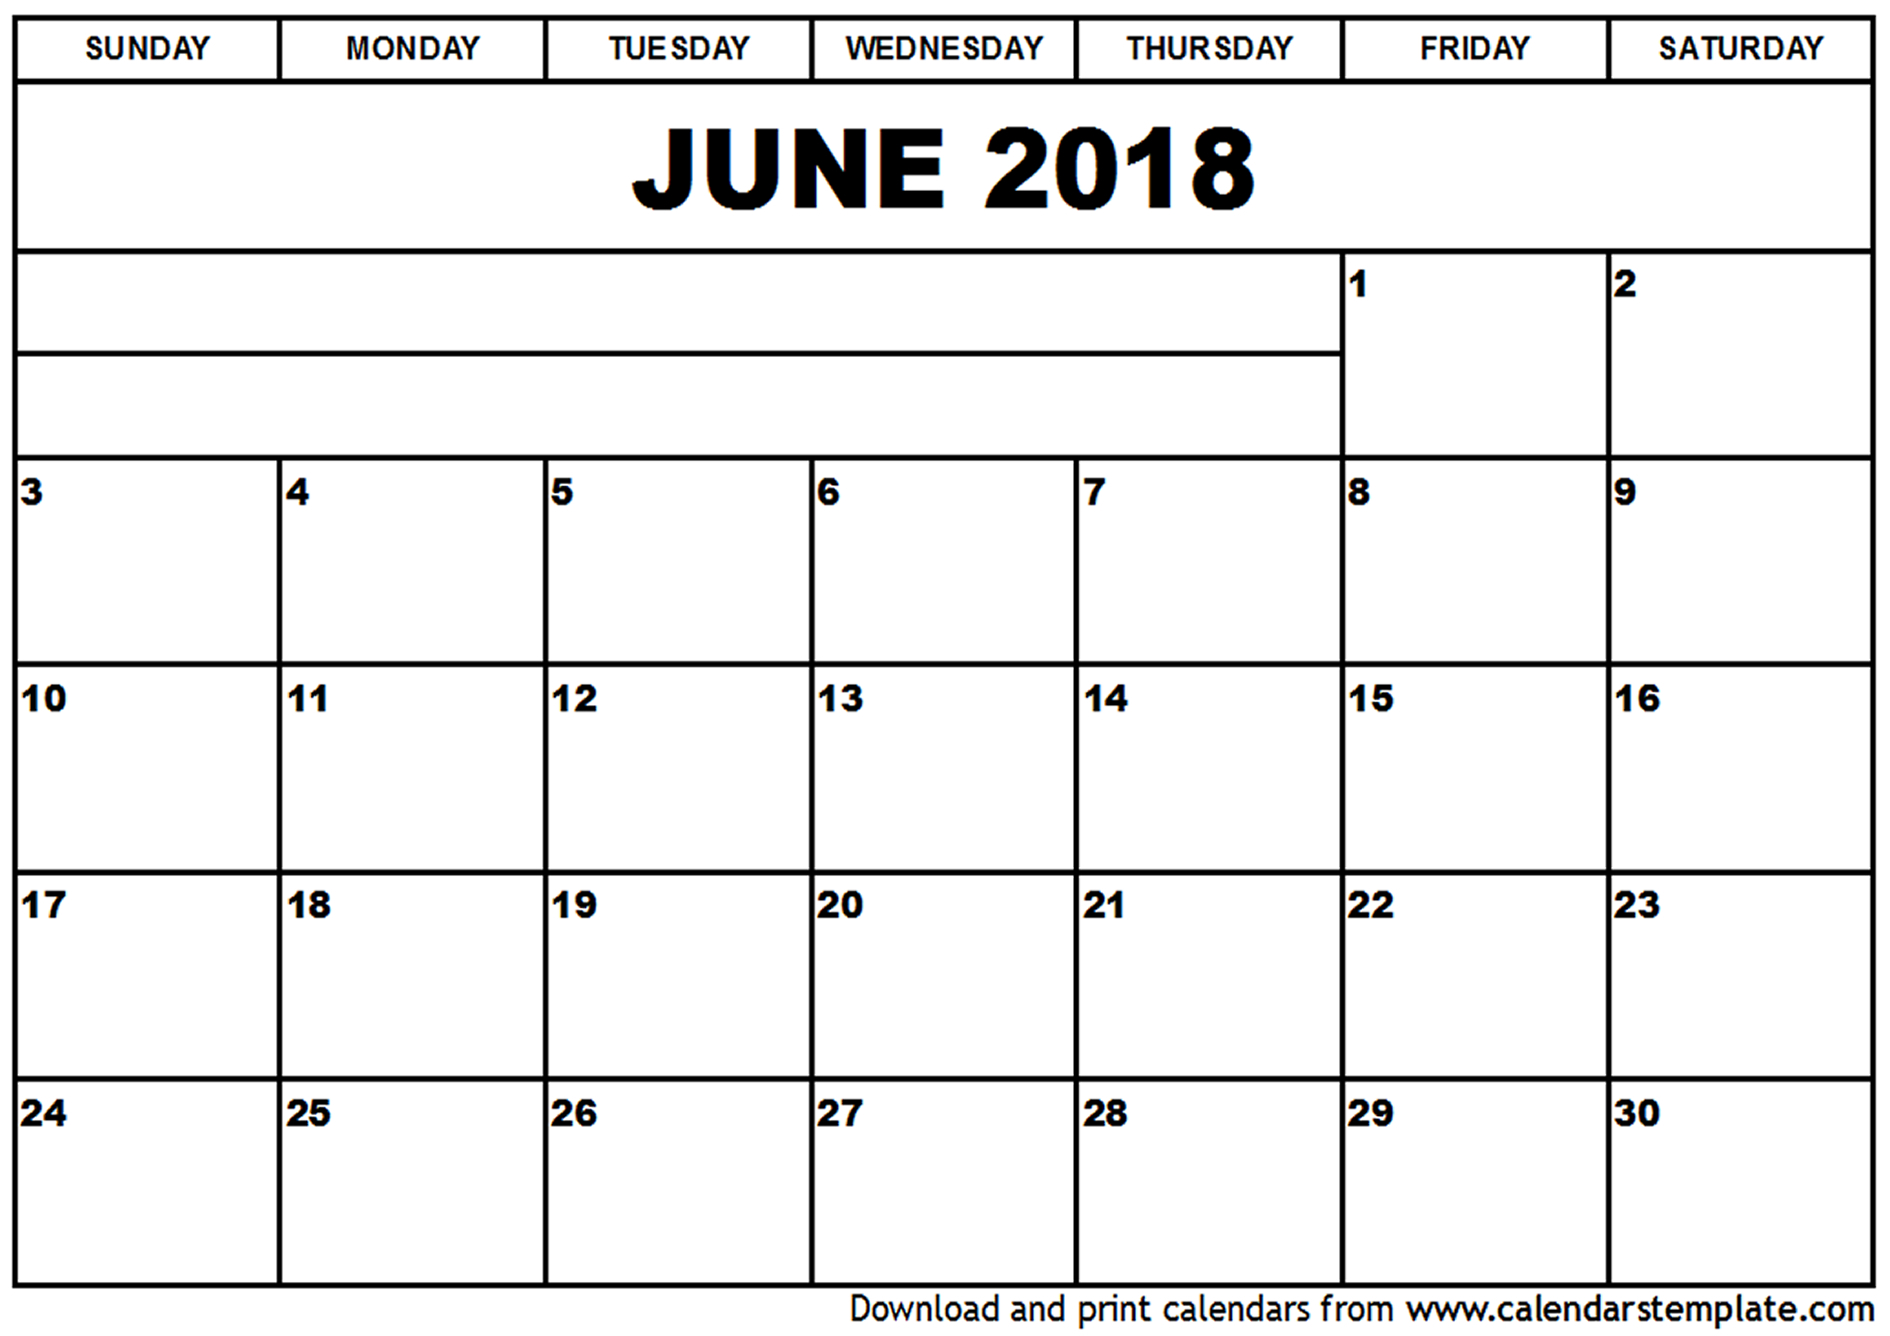 June 2018 Printable Calendar Cute